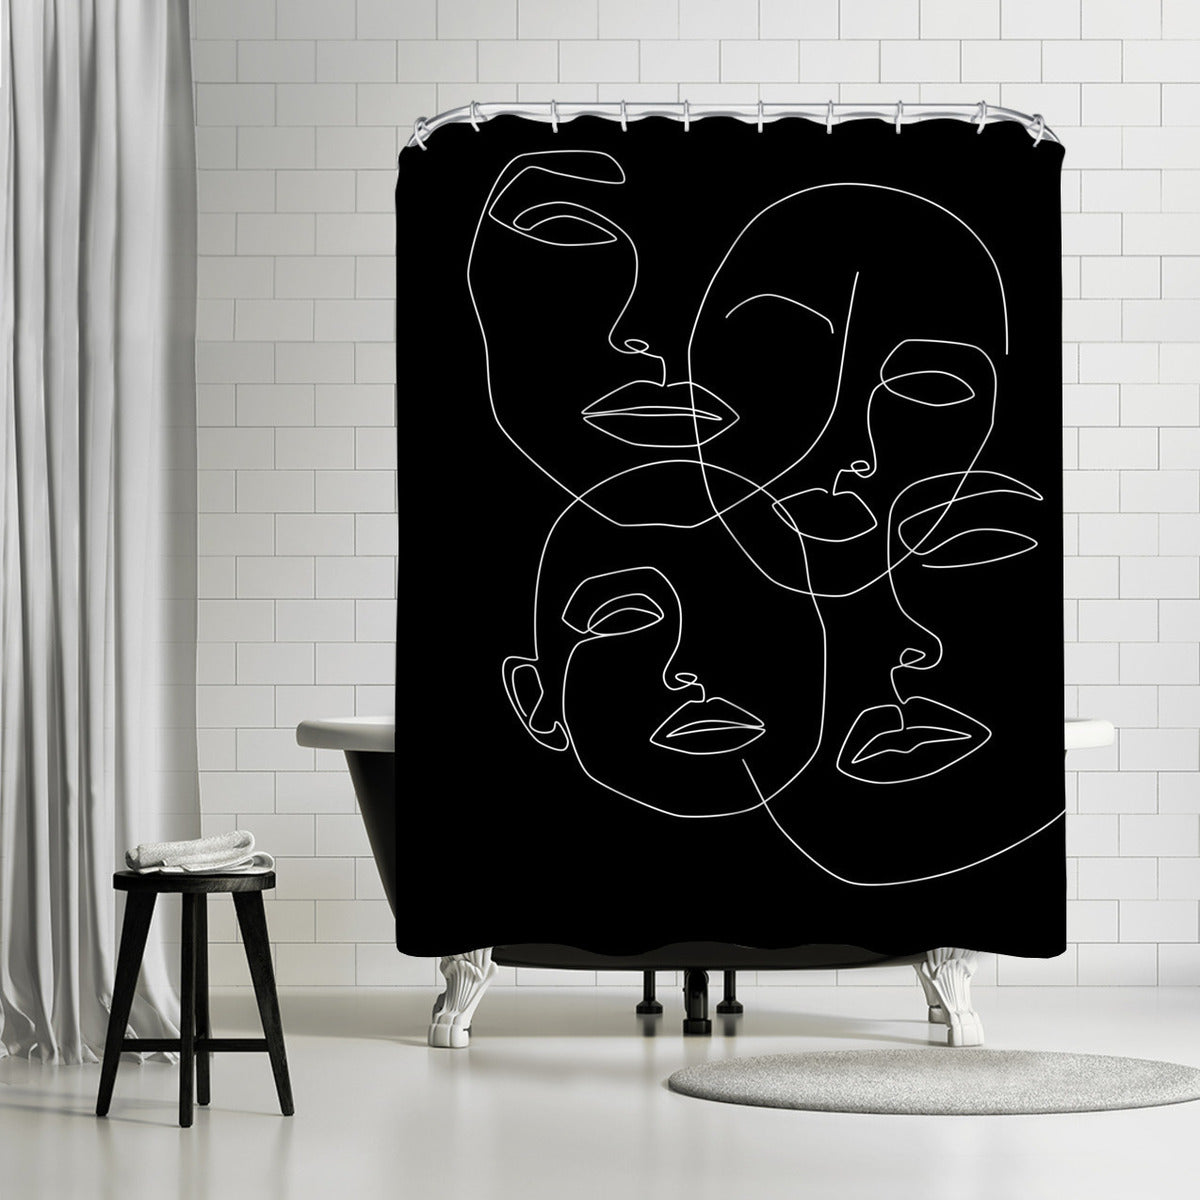 In The Dark by Explicit Design Shower Curtain -  - Americanflat